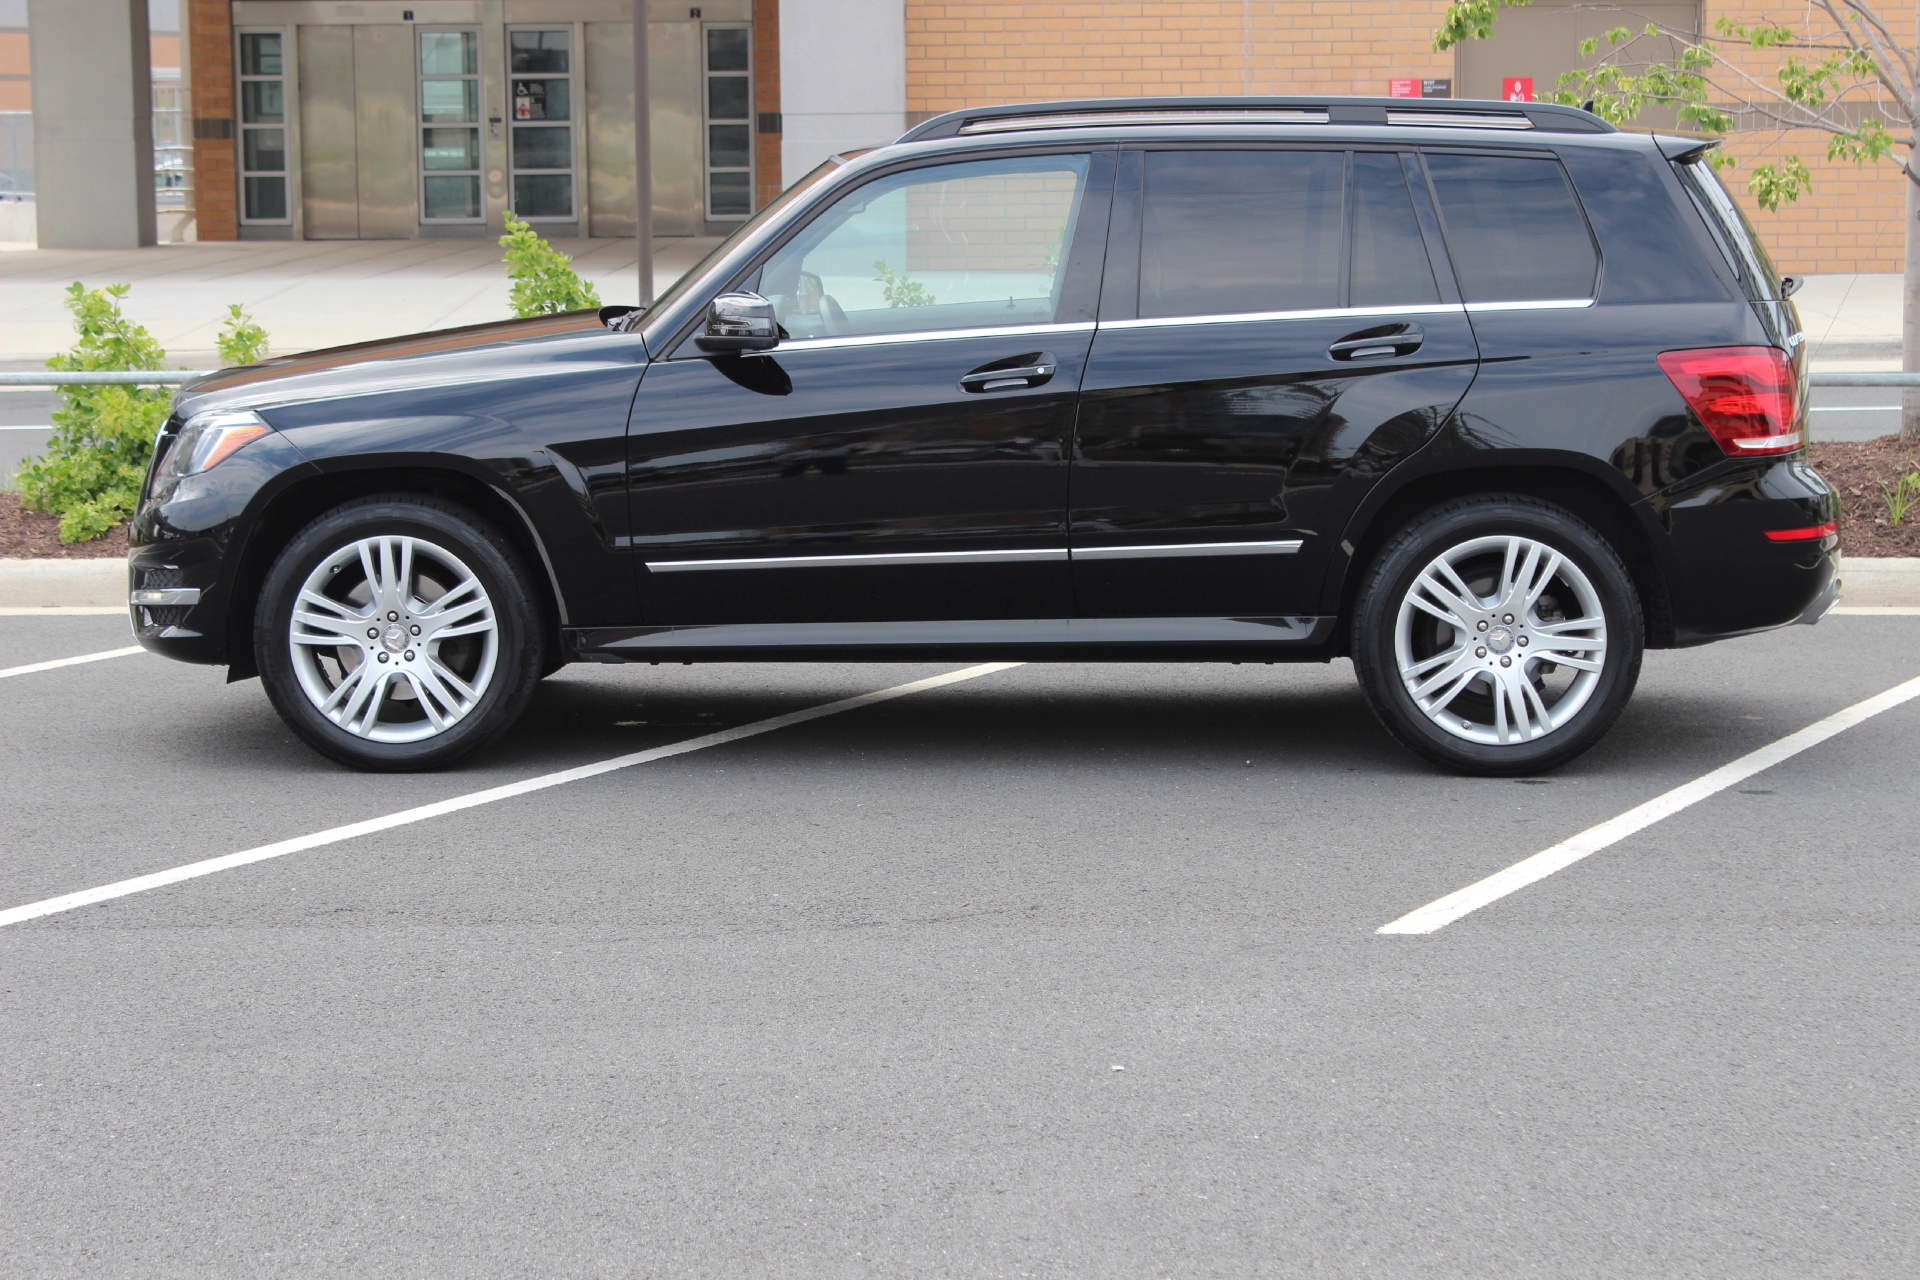 2013 mercedes benz glk glk350 4matic stock p046021 for for Mercedes benz glk 350 maintenance schedule